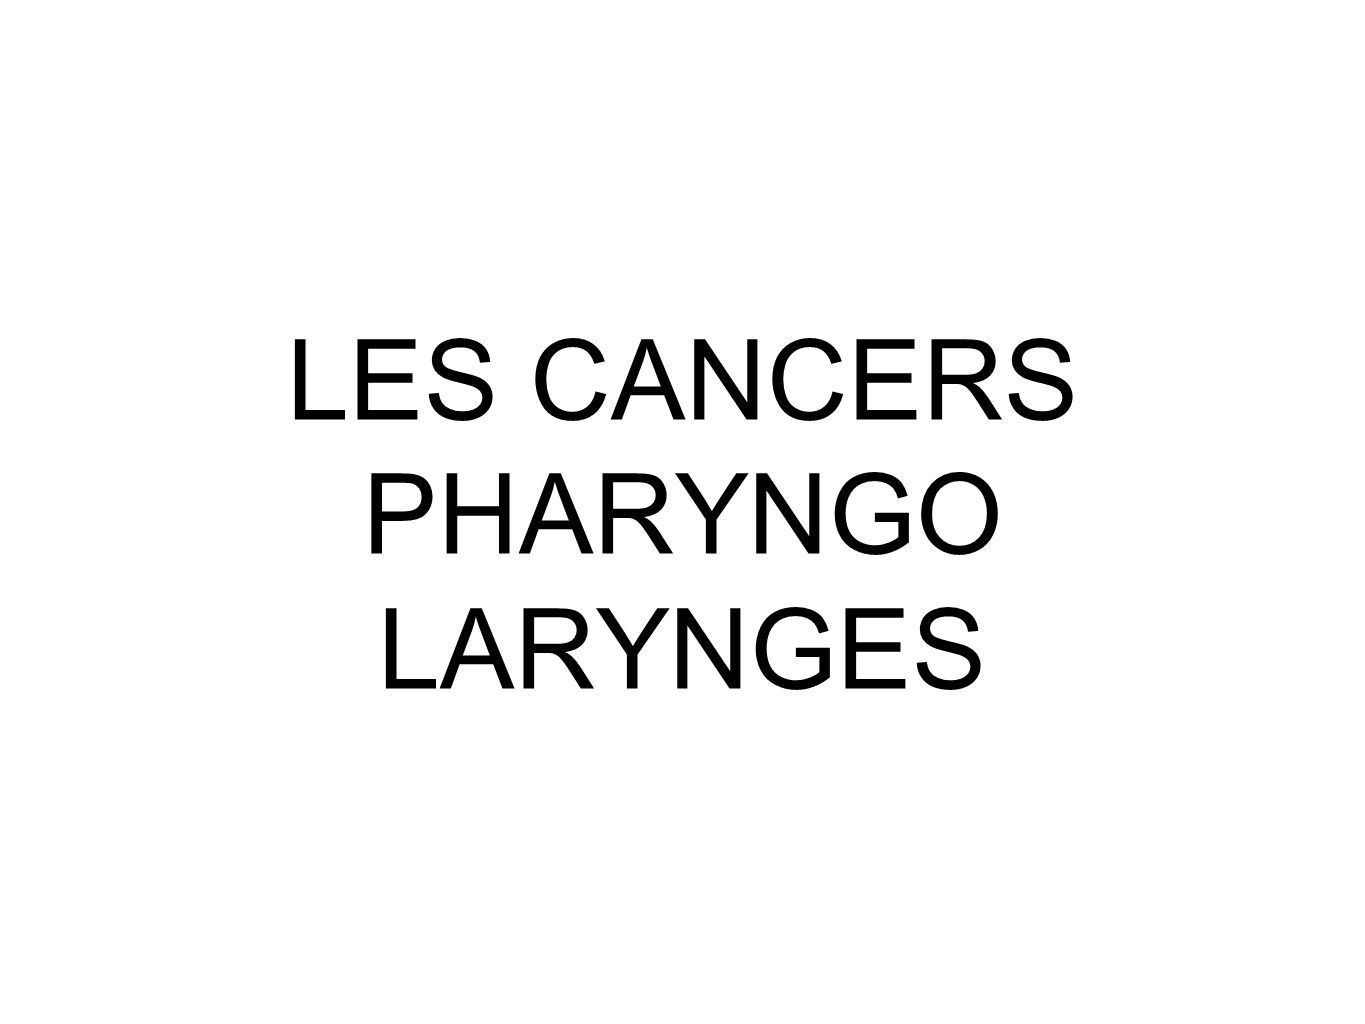 LES CANCERS PHARYNGO LARYNGES